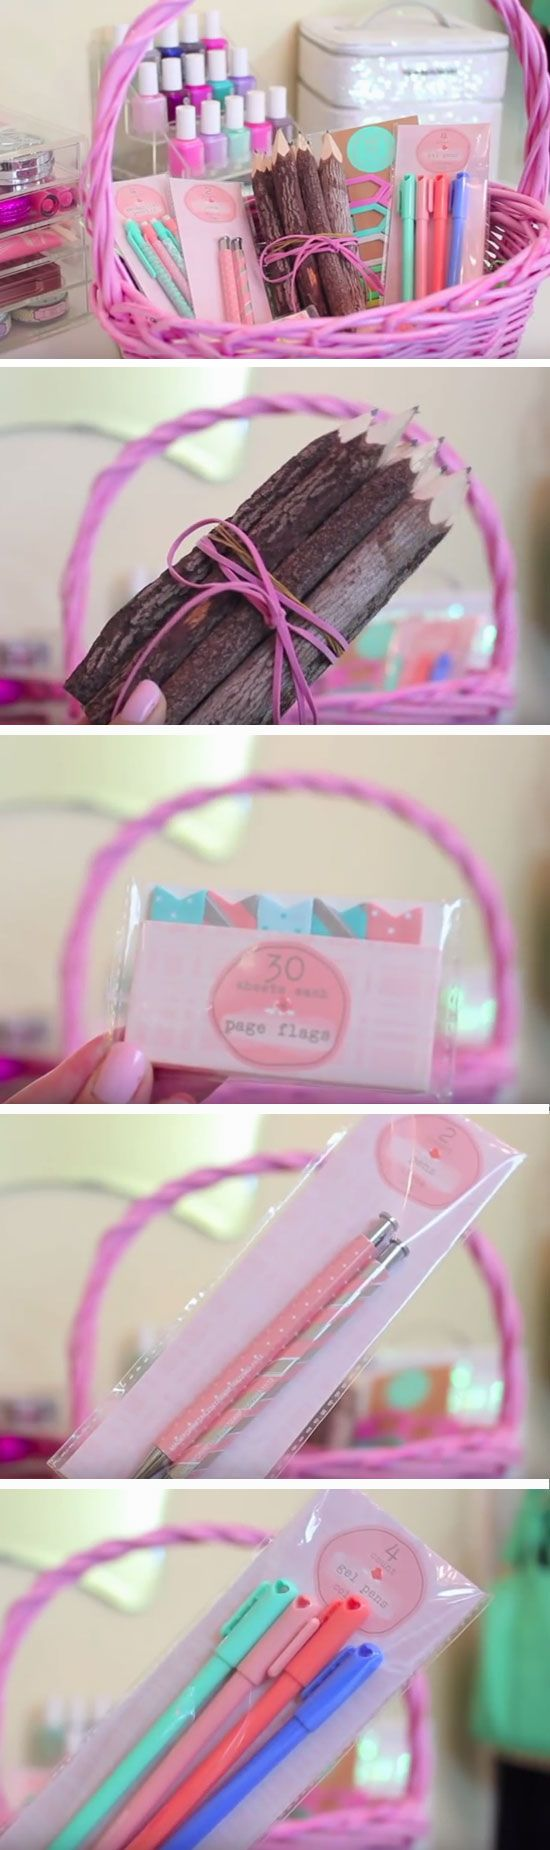 Best 555 Projects to Try images on Pinterest | Gift baskets, Gift ...